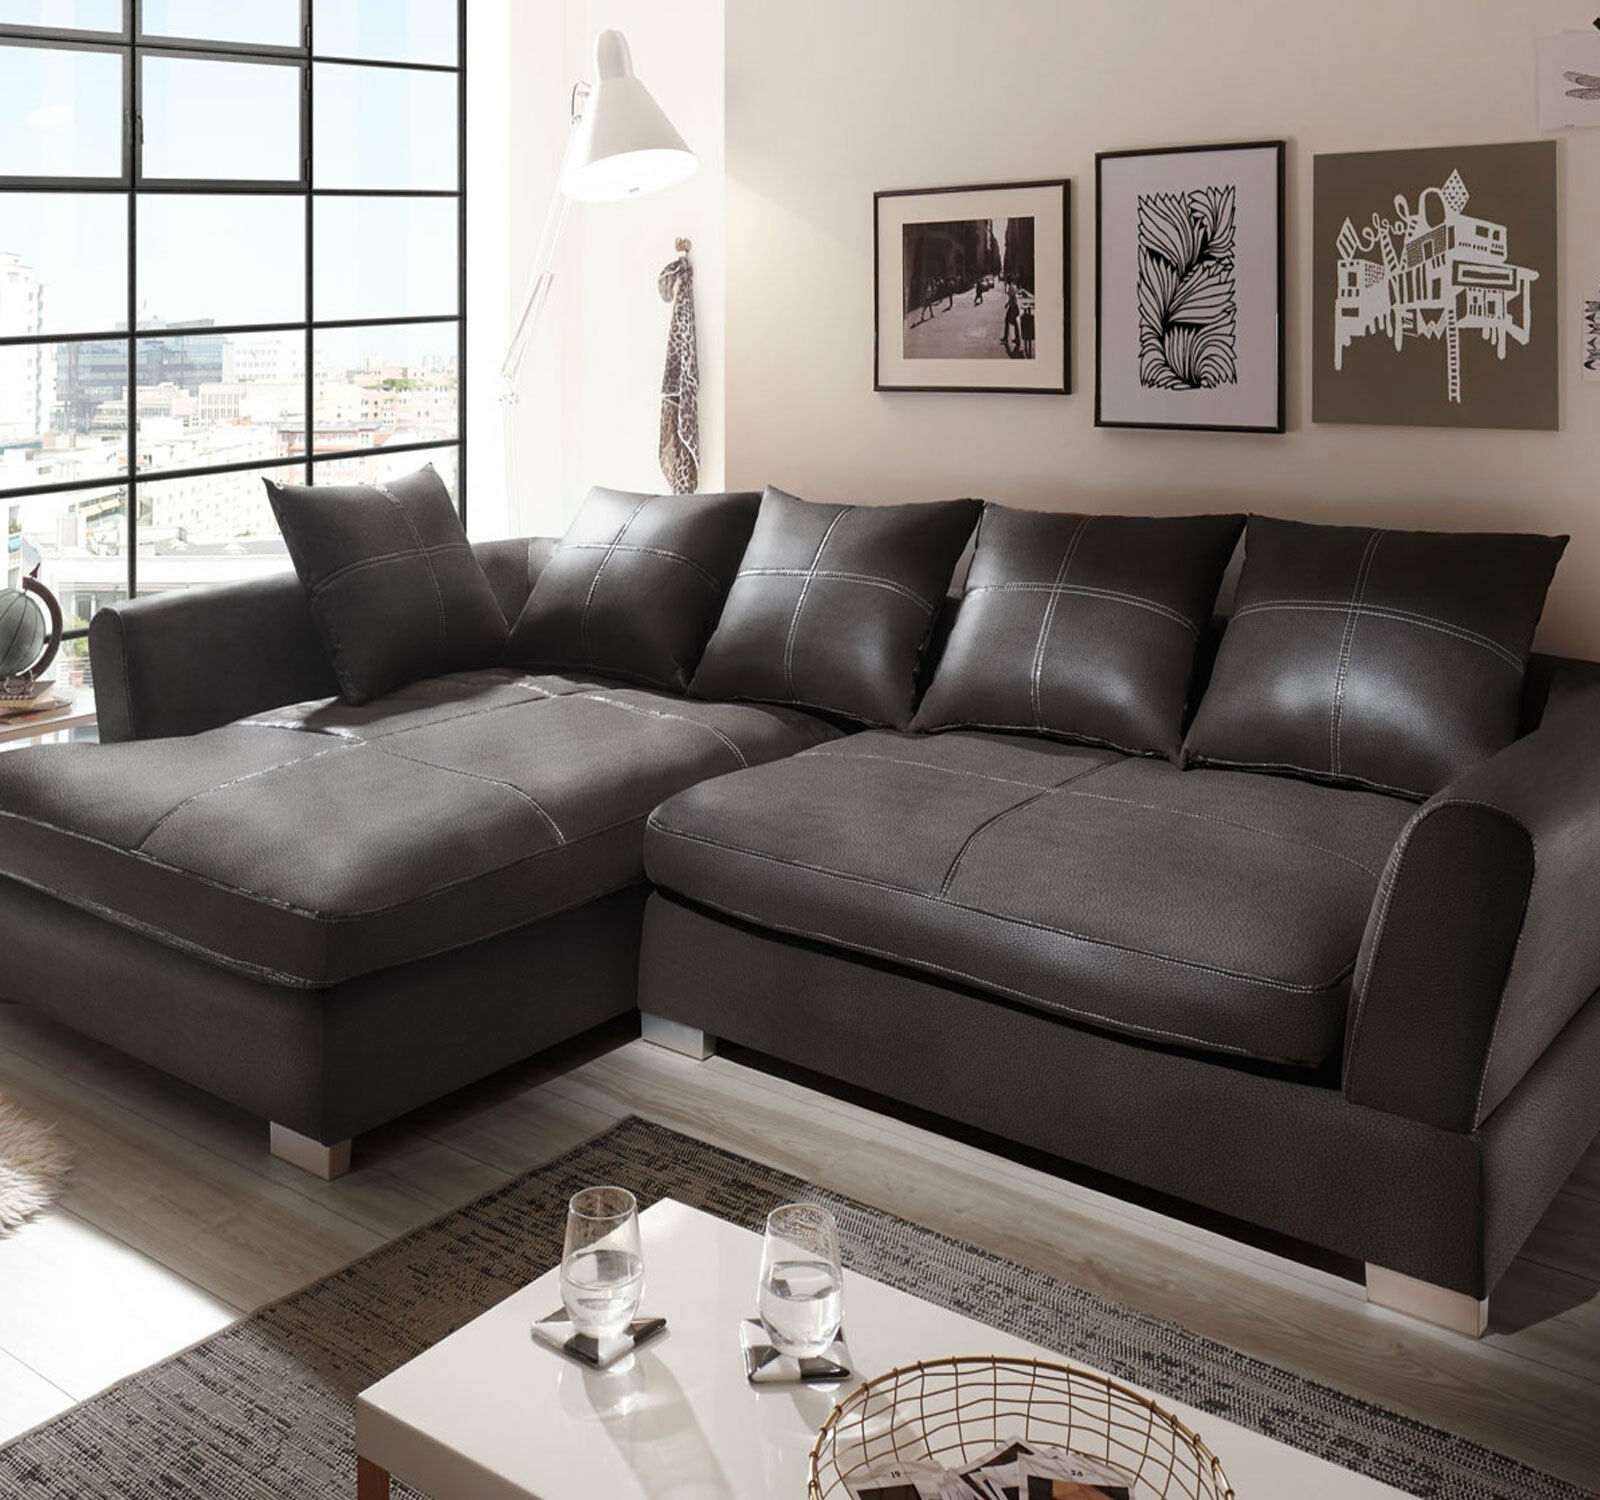 Big Couch Garnitur Design Couchgarnitur Anthrazit Sofa K Leder Eck Big Sofa